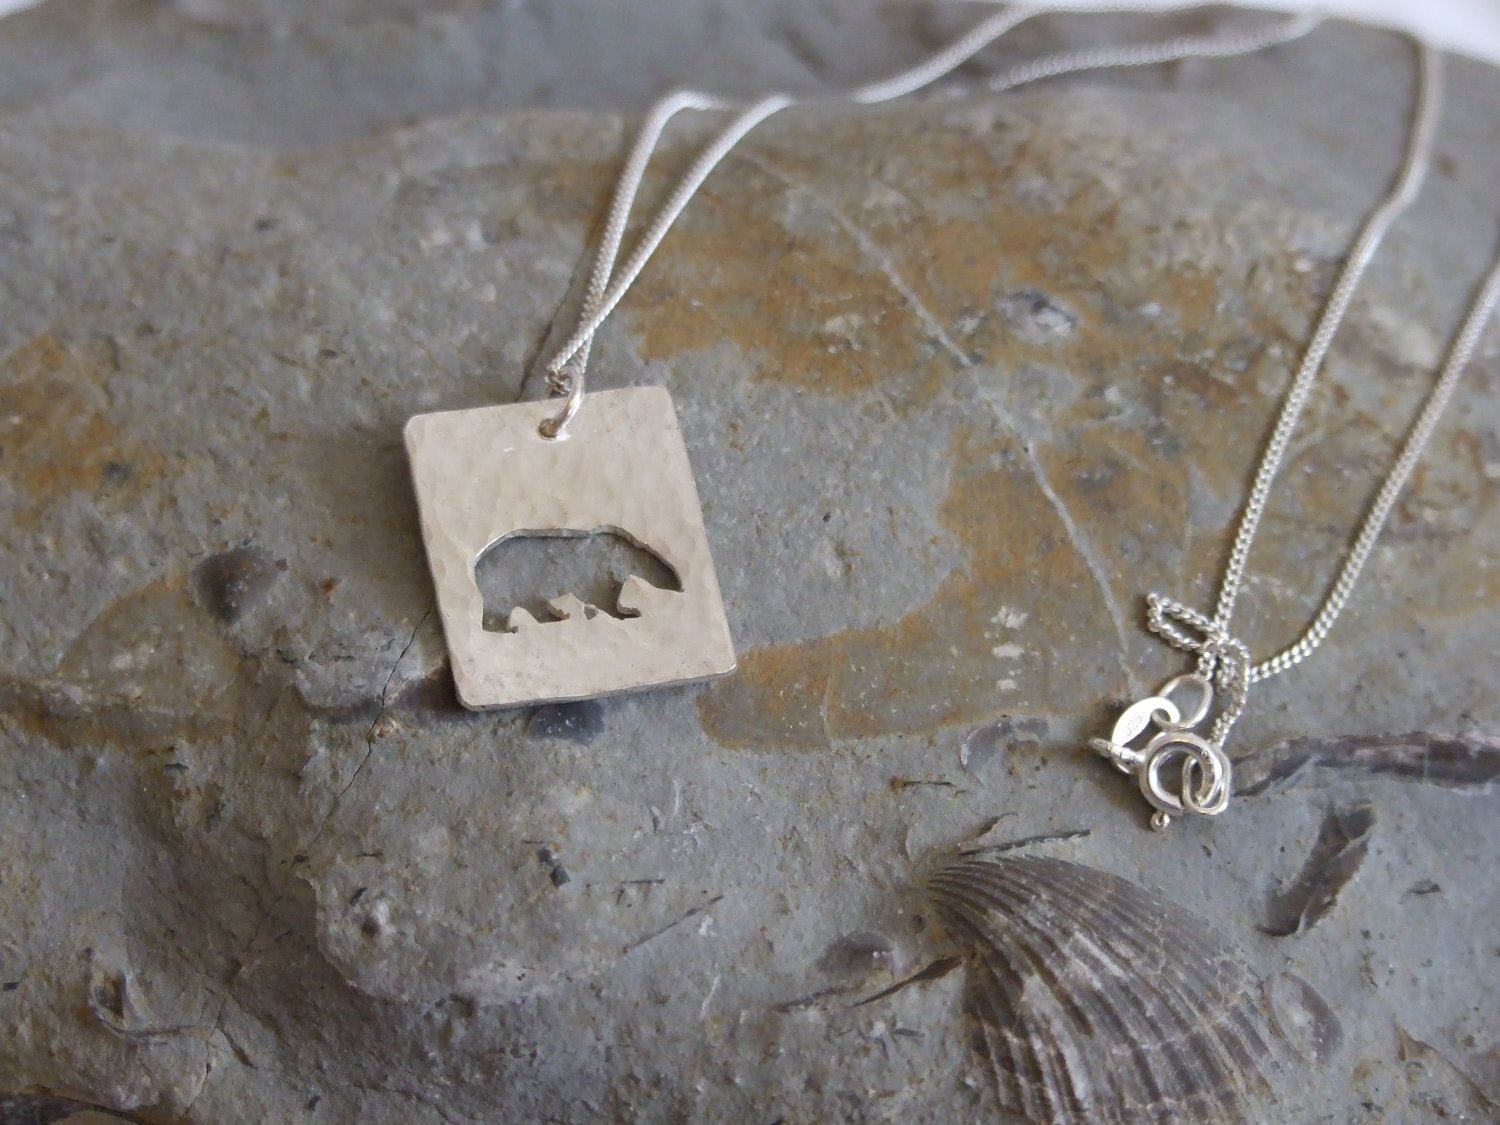 Polar bear pendant a textured sterling silver pendant showing a polar bear pendant a textured sterling silver pendant showing a silhouette of a polar bear aloadofball Images